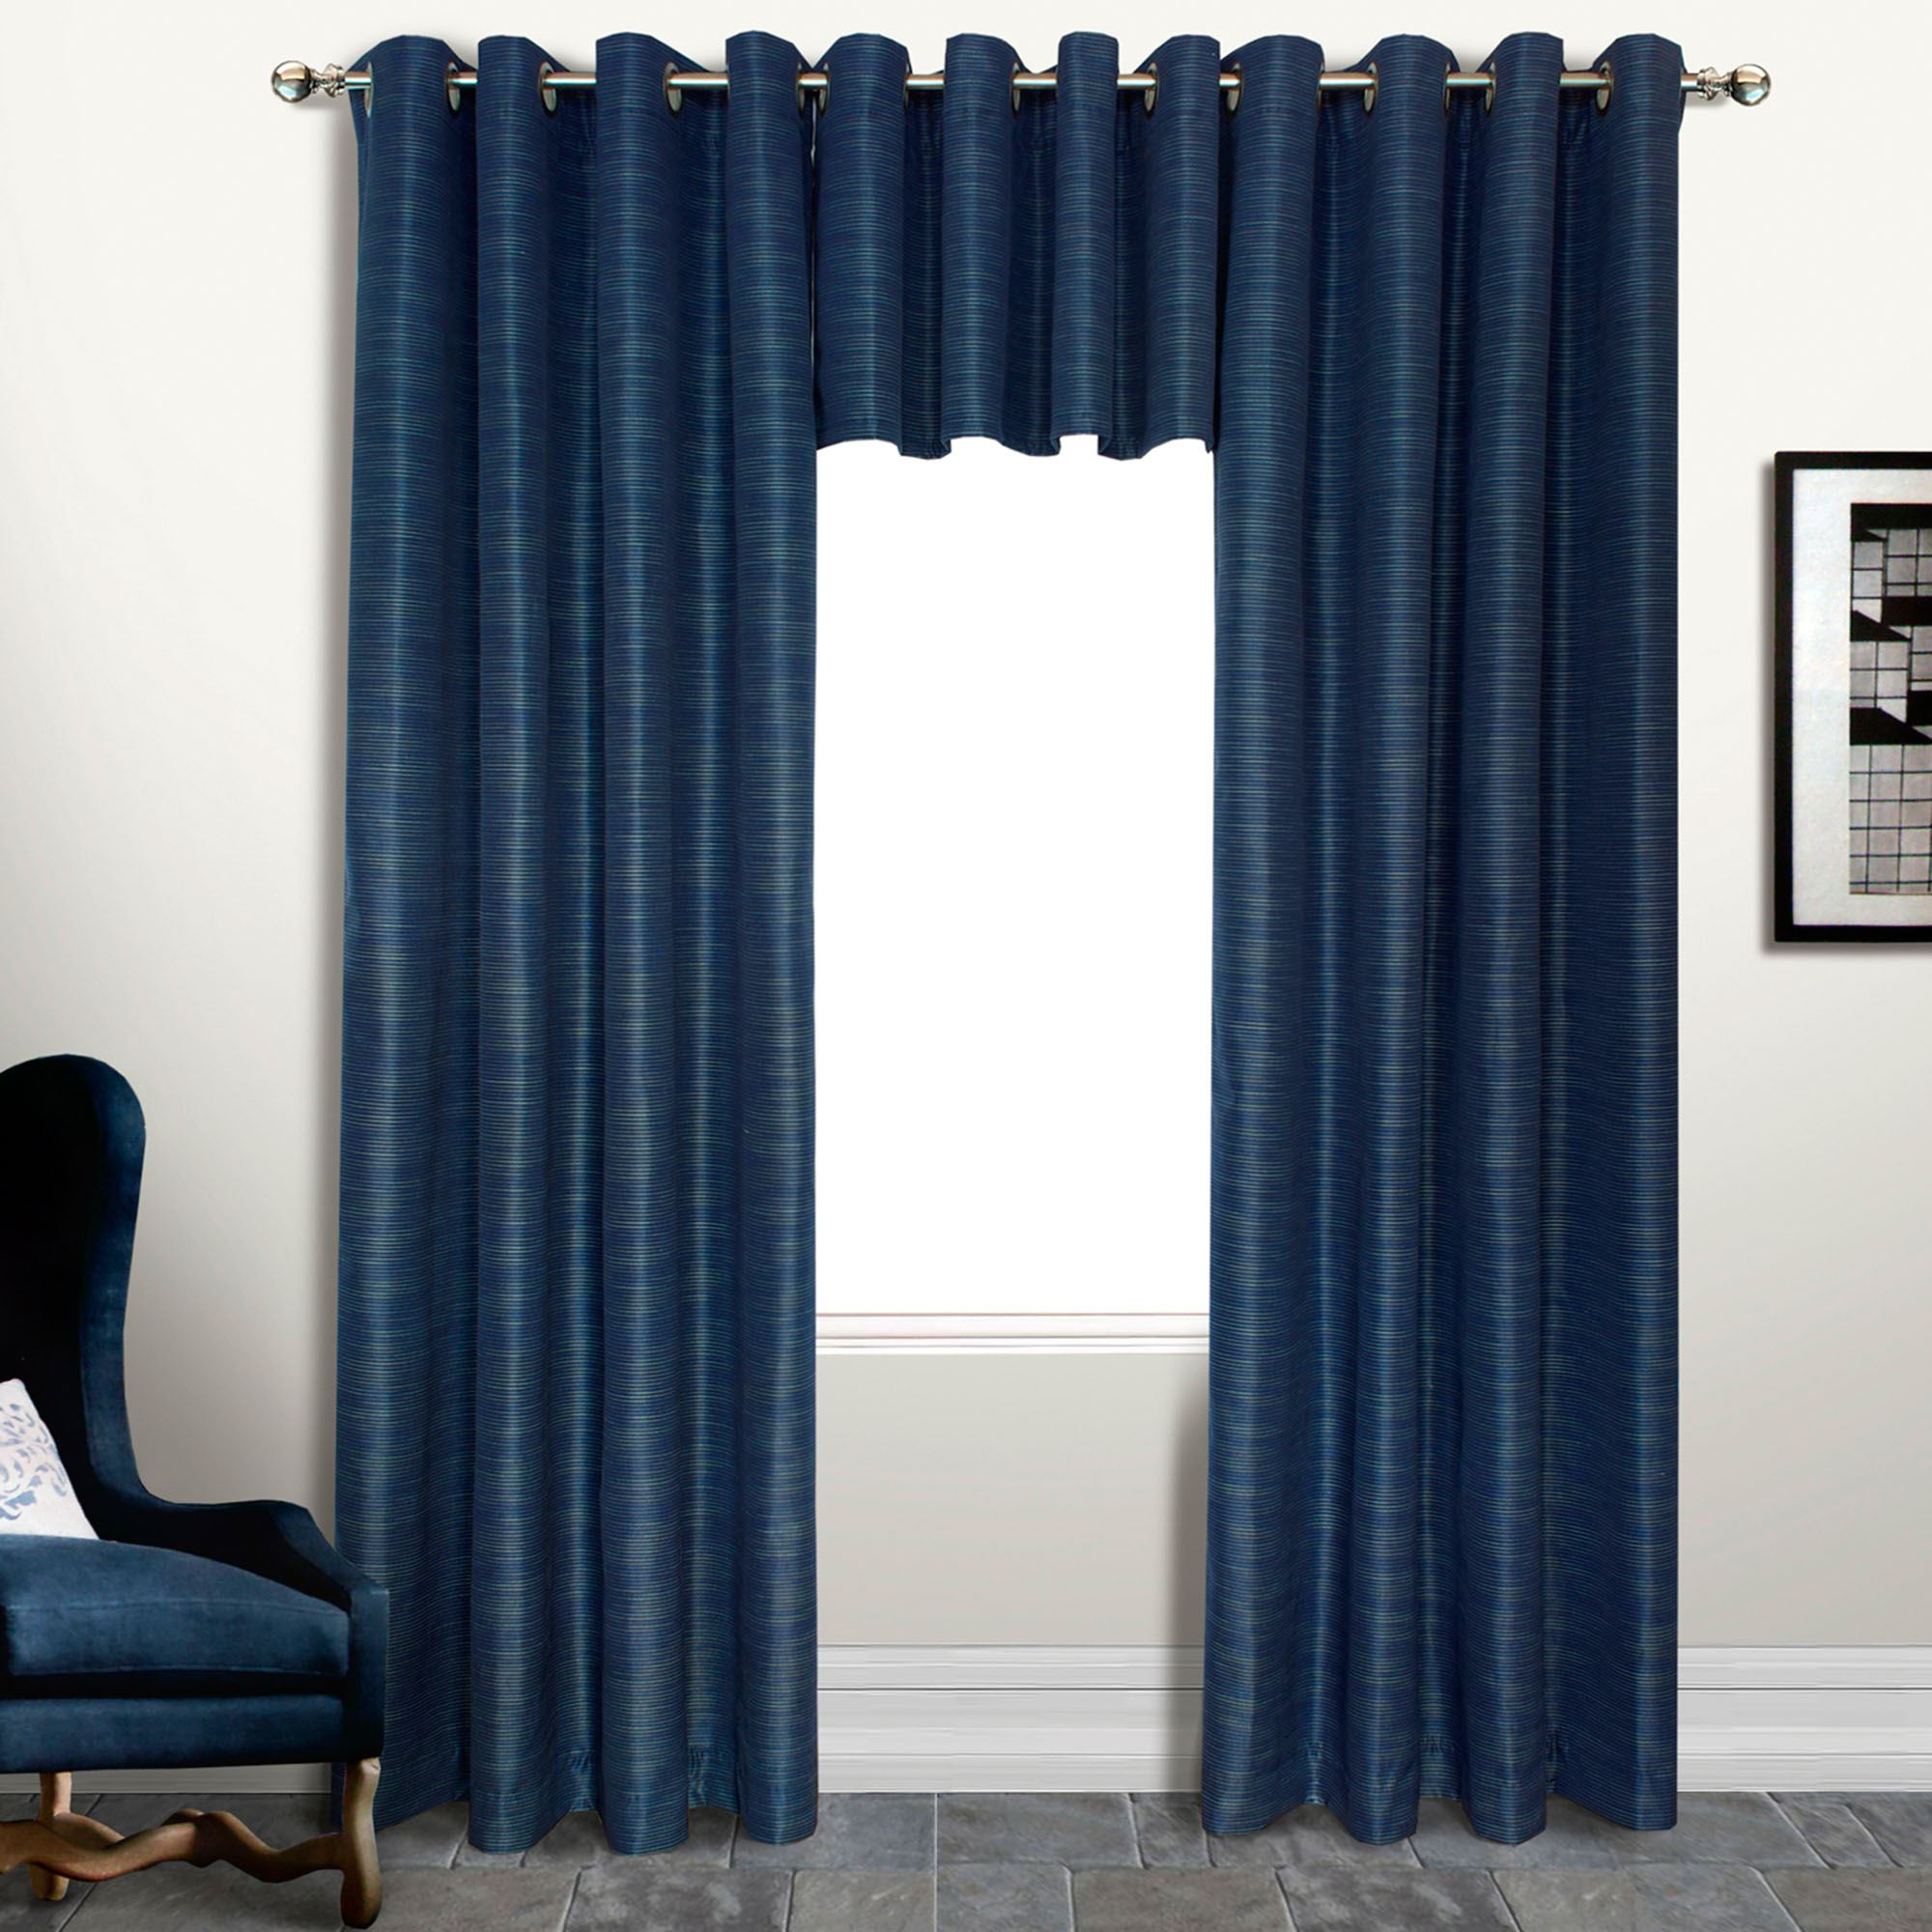 ansonia drapes damask set piper x p by comforter window valance wright bedding blue tailored denim